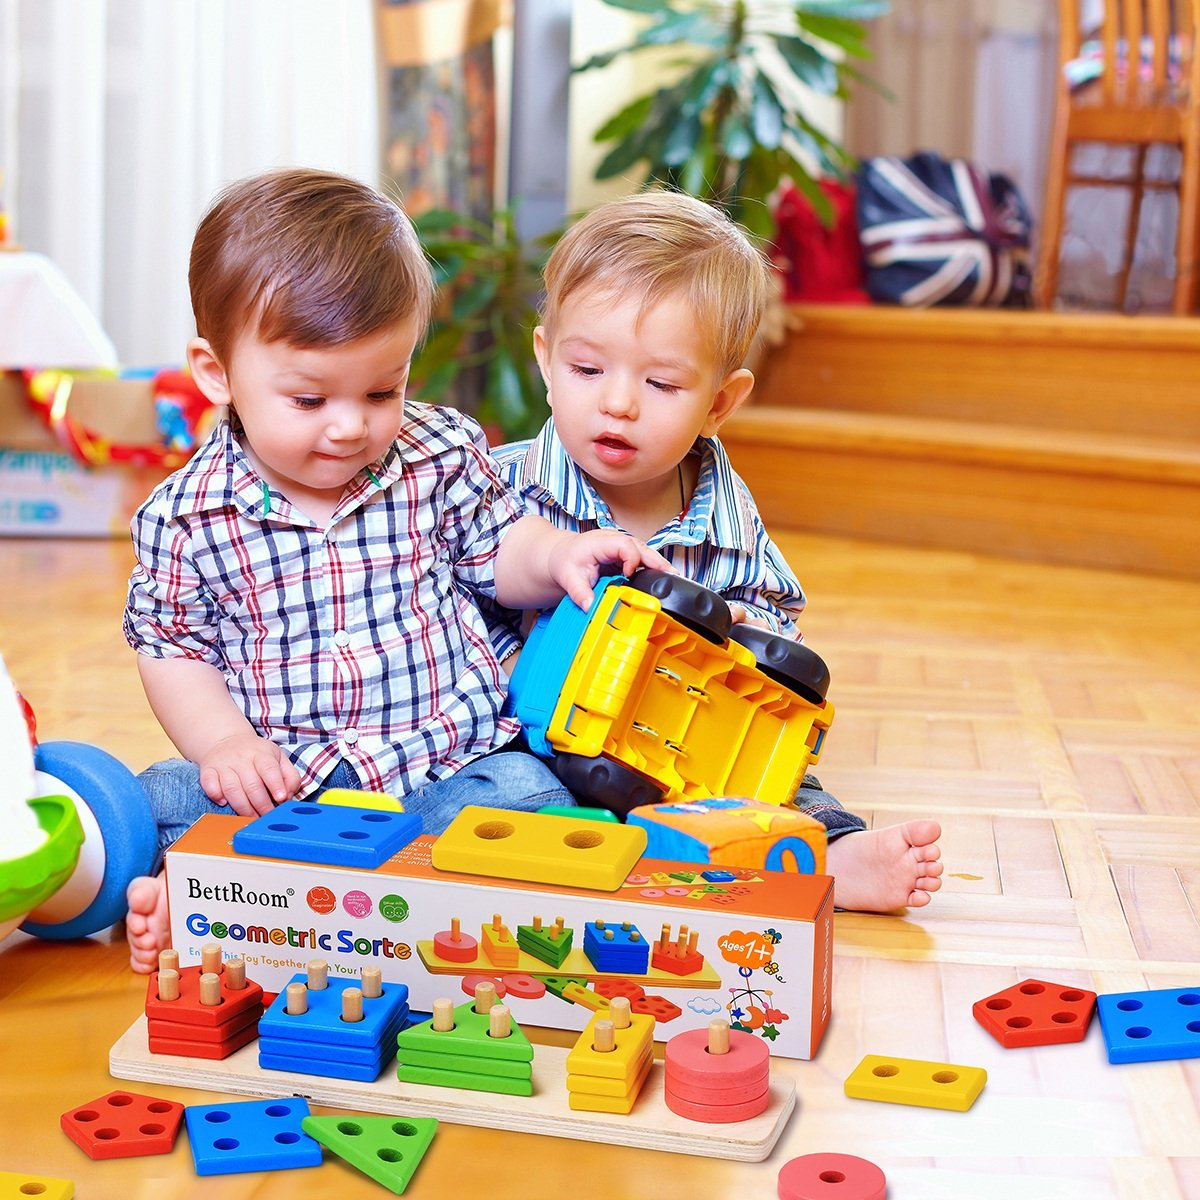 Longquan Bobi Qizhi Toys Co 14IN Ltd. BettRoom Wooden Educational Preschool Toddler Toys for 1 2 3 4-5 Year Old Boys Girls Shape Color Recognition Geometric Board Blocks Stack Sort Kids Children Non-Toxic Toy